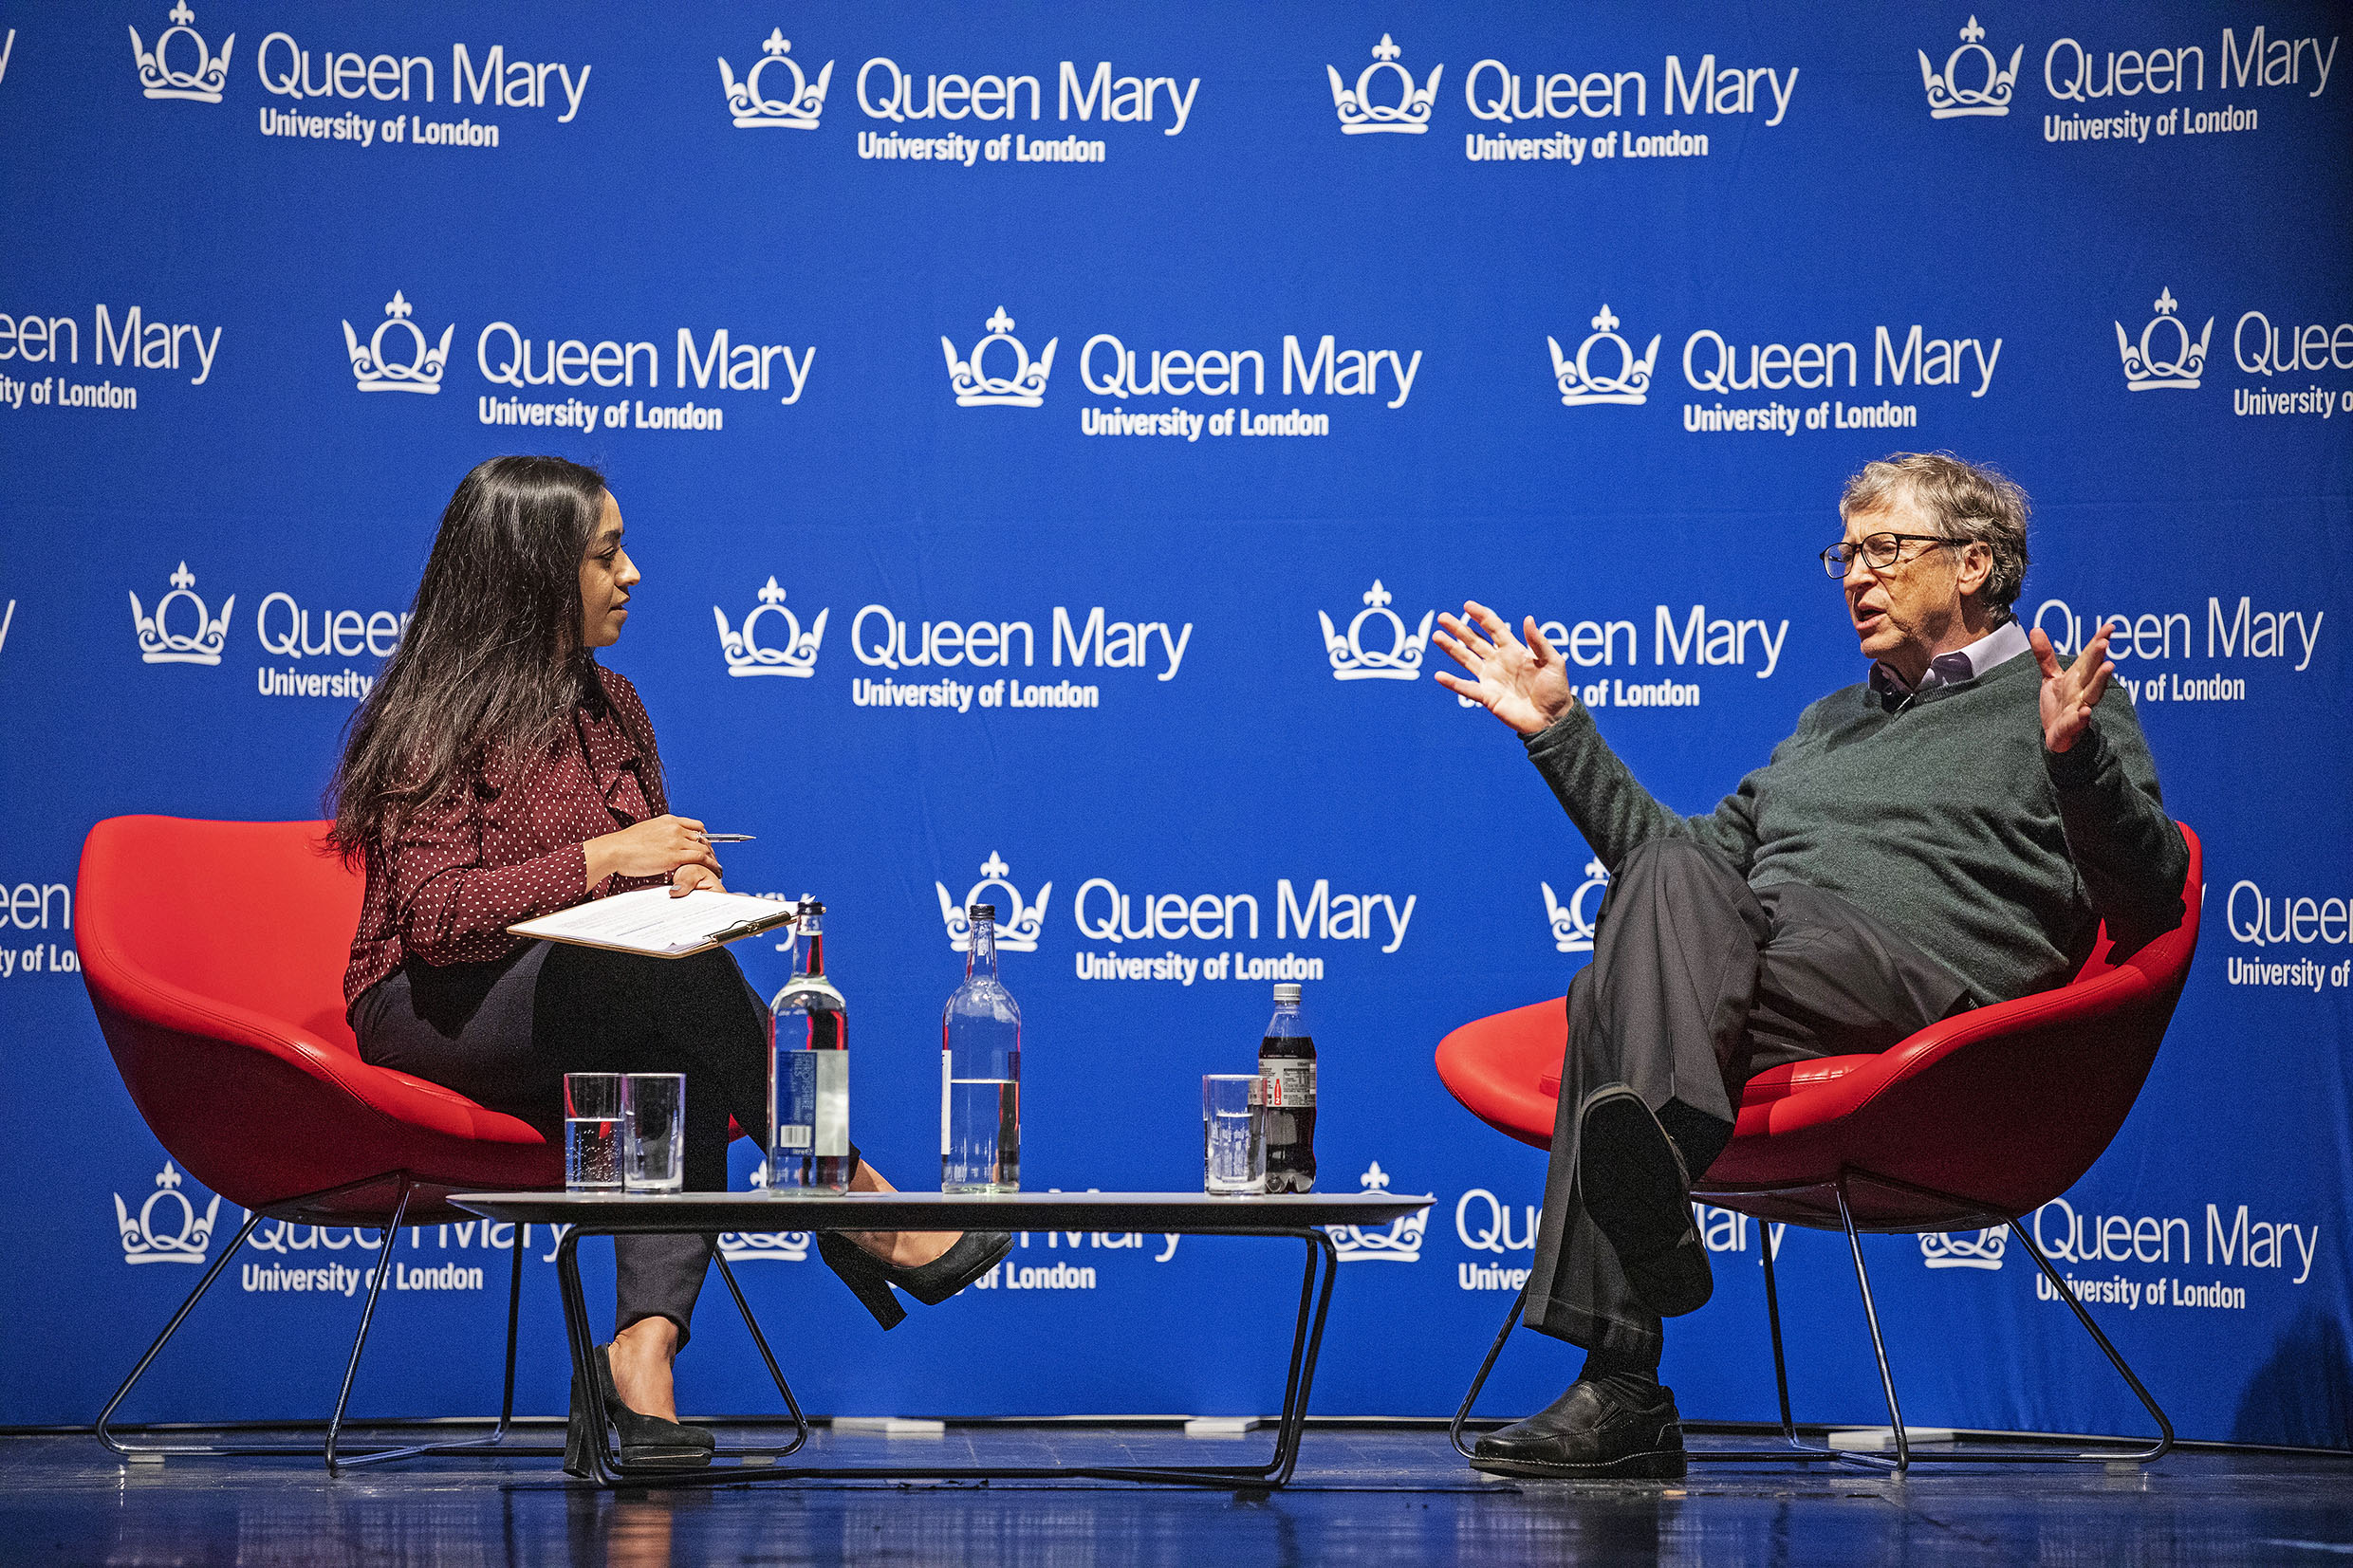 Bill gates being interviewed at a Queen Mary event